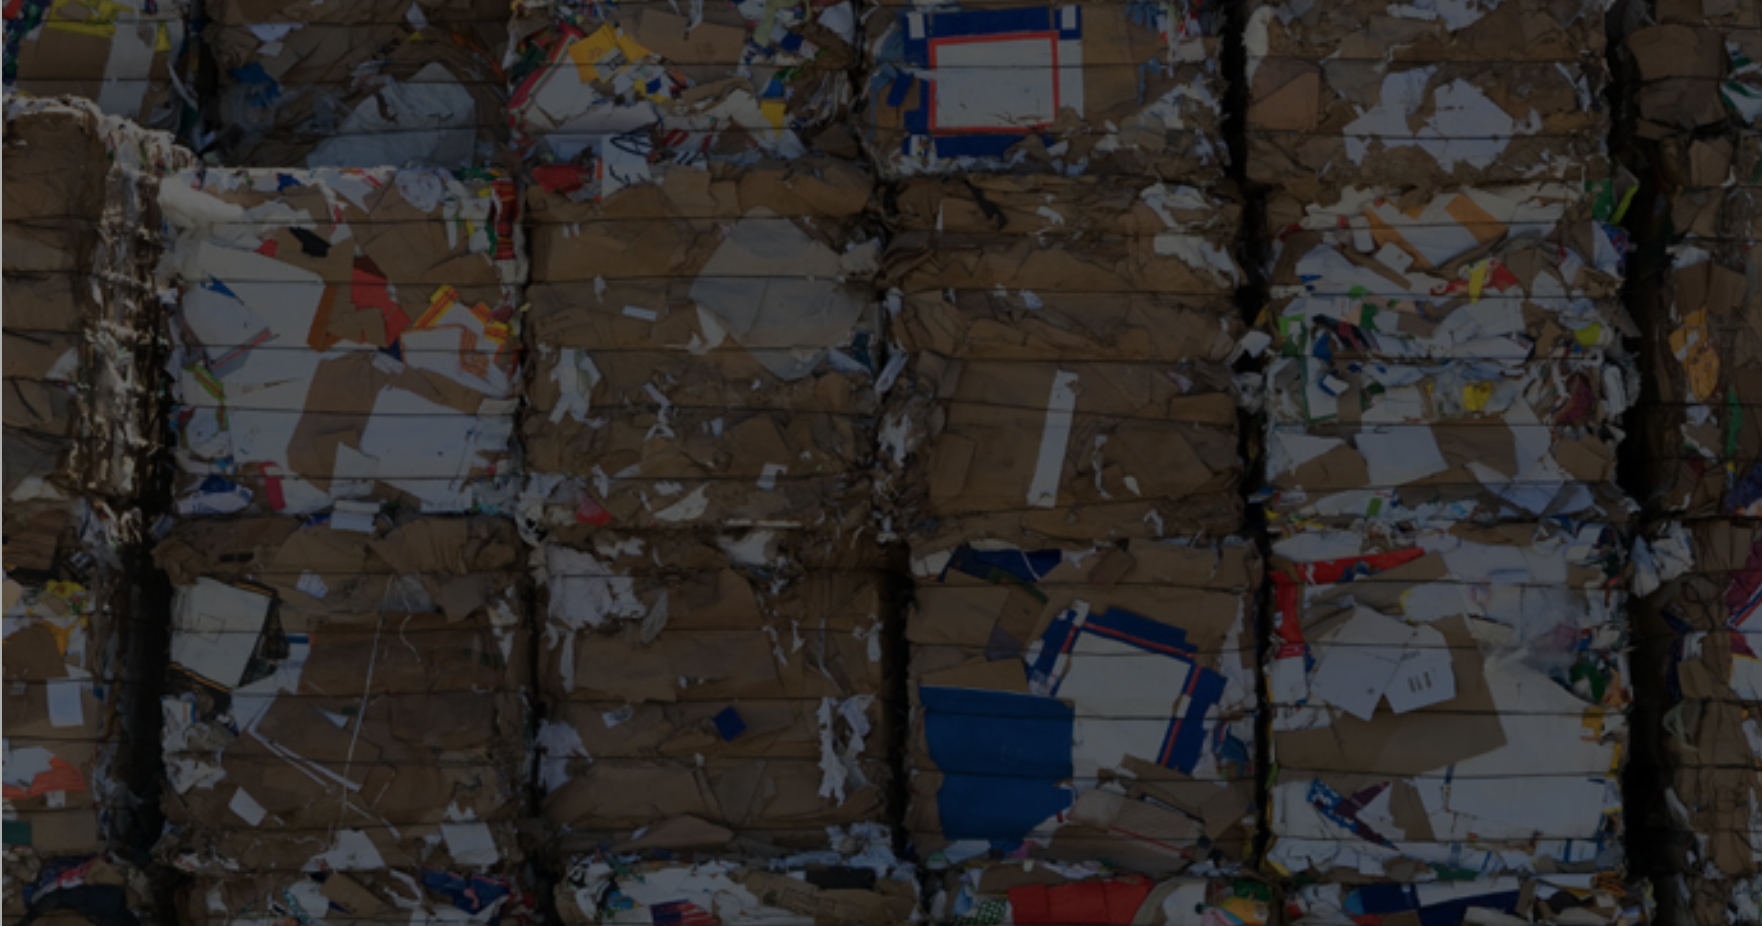 SUSTAINABLE PACKAGING - BPOST FUTURE LAB IS RESEARCHING SIX MAIN AREAS AROUND PACKAGING WASTE.